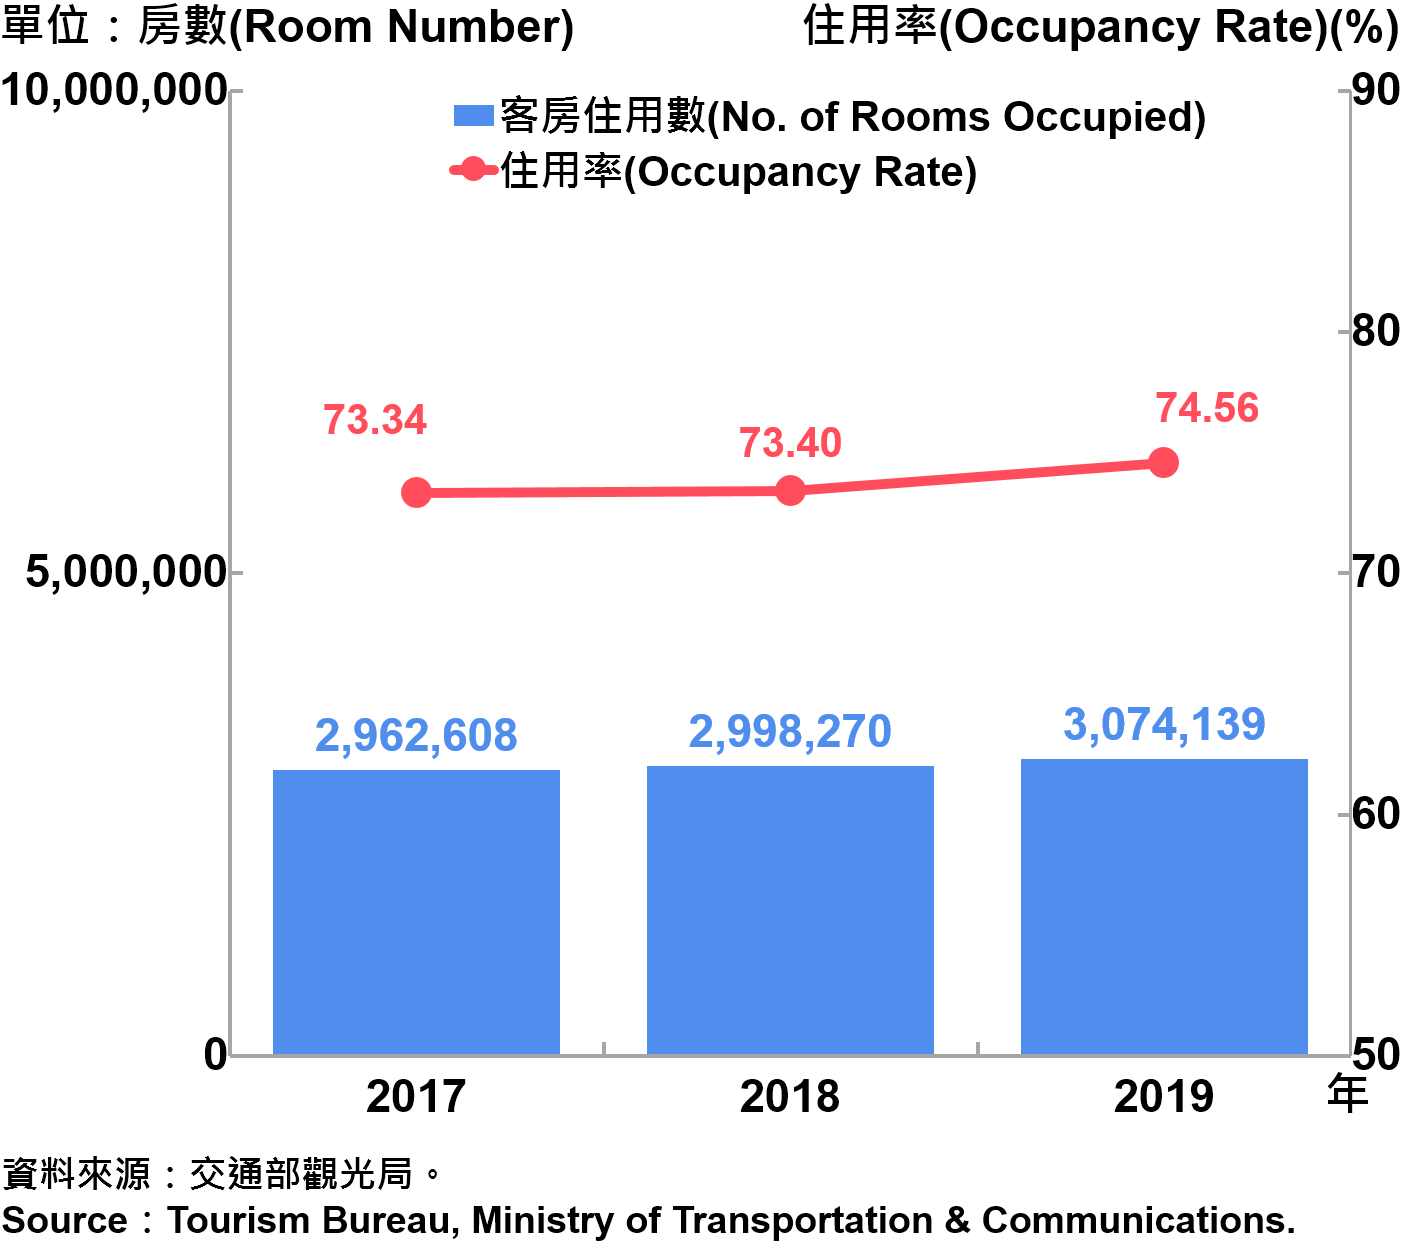 臺北市觀光旅館客房住用率統計—2019 Room Occupancy Rate of Tourist Hotel in Taipei City—2019